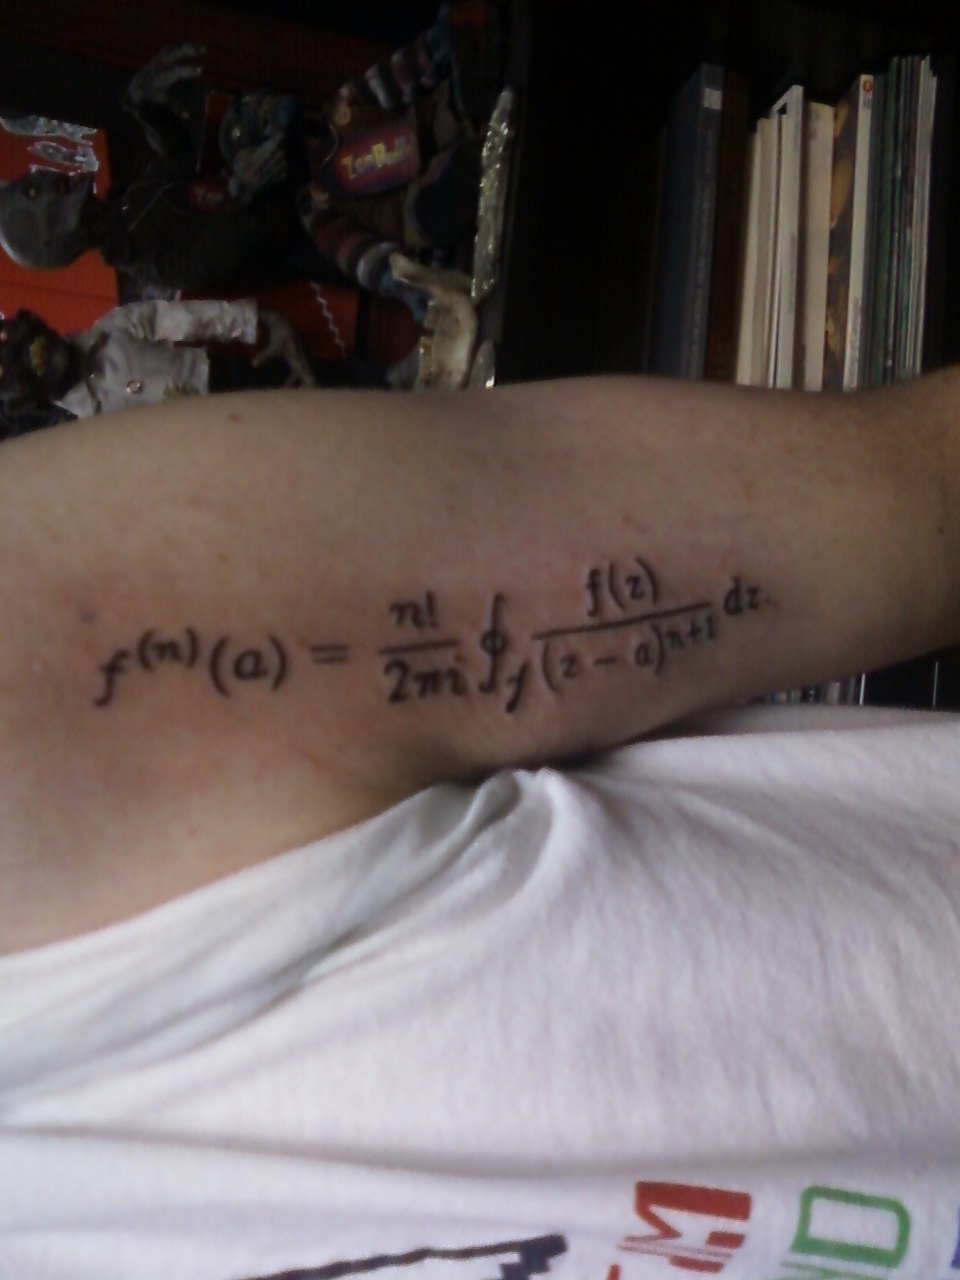 fuckyeahtattoos:  Cauchy's Integral Formula on my upper left forearm, inspired by my Complex Analysis class  Cheater!! haha jk